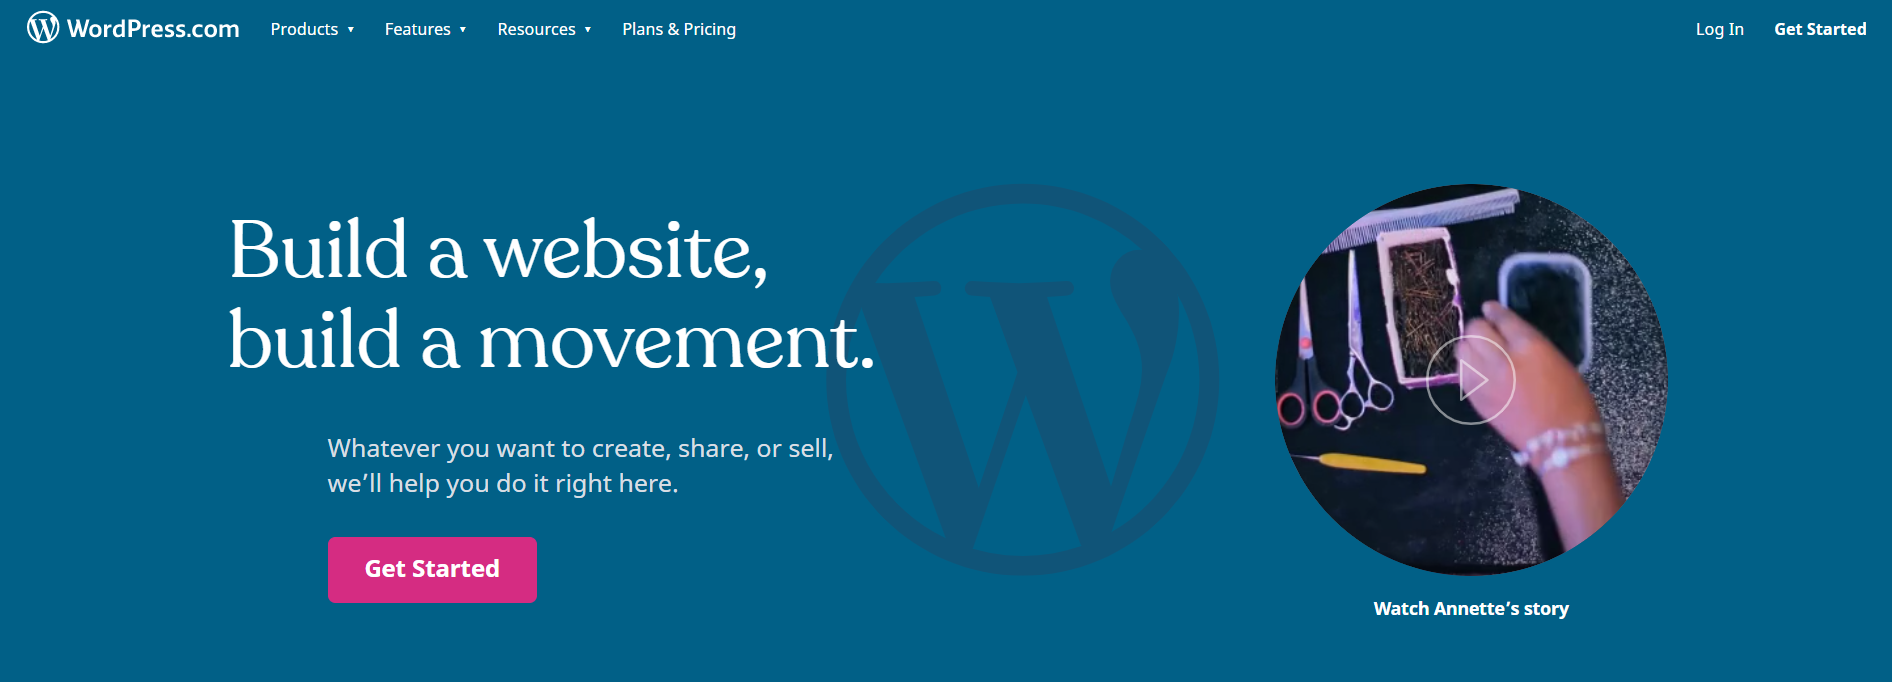 wordpress cms best content management systems